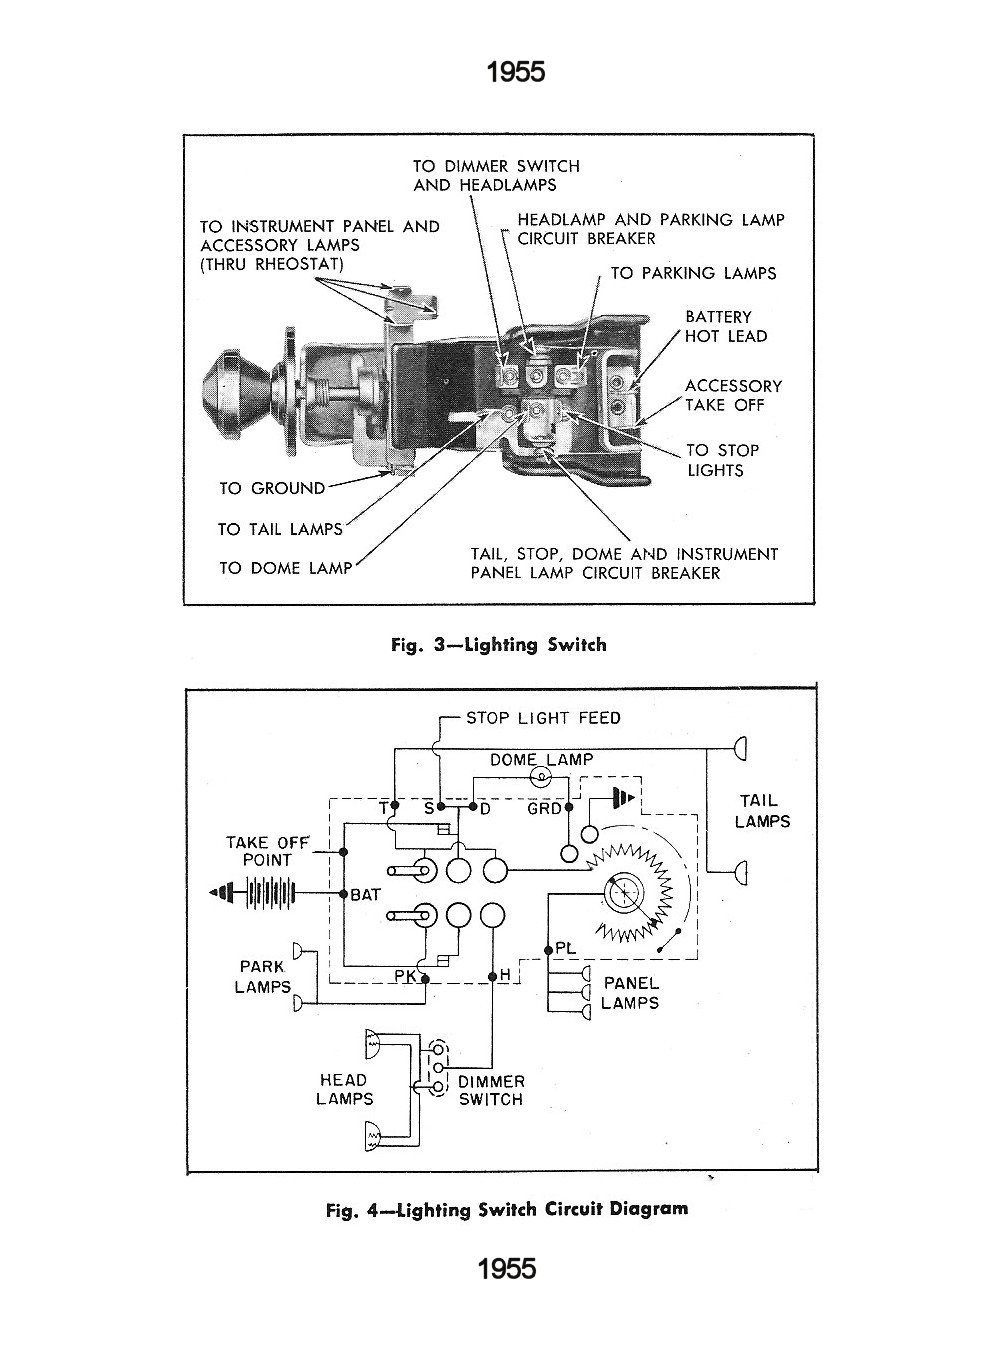 1964 ford falcon wiper switch wiring diagram wiring diagram 1962 Ford Truck Wiring Diagram 1963 chevrolet wiring diagram wiring diagram1964 ford headlight dimmer switch wiring diagram wiring diagram79 ford headlight